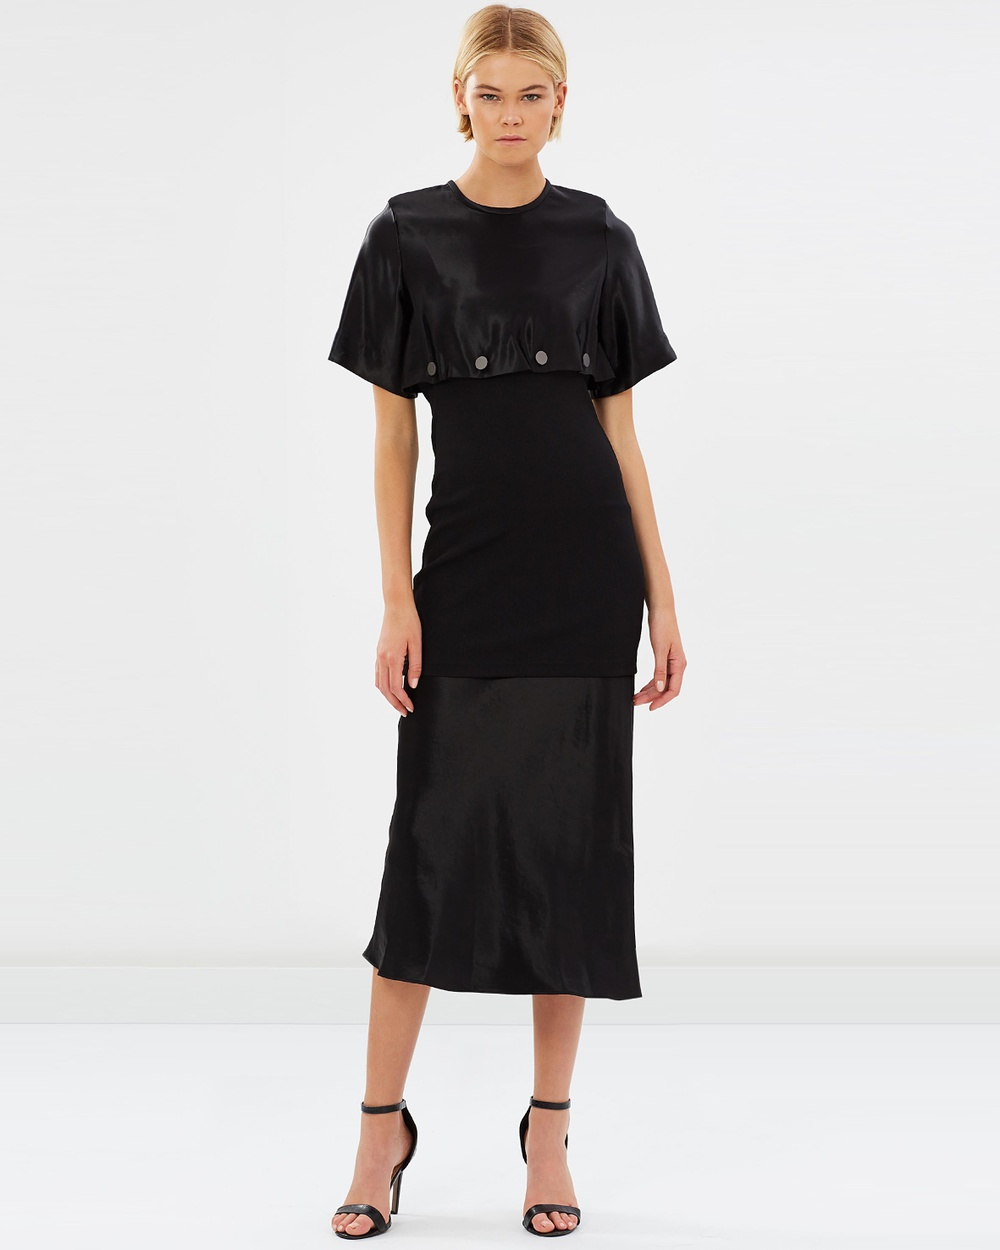 Christopher Esber Buttoned Disect Tee Dress Dresses Black Buttoned Disect Tee Dress